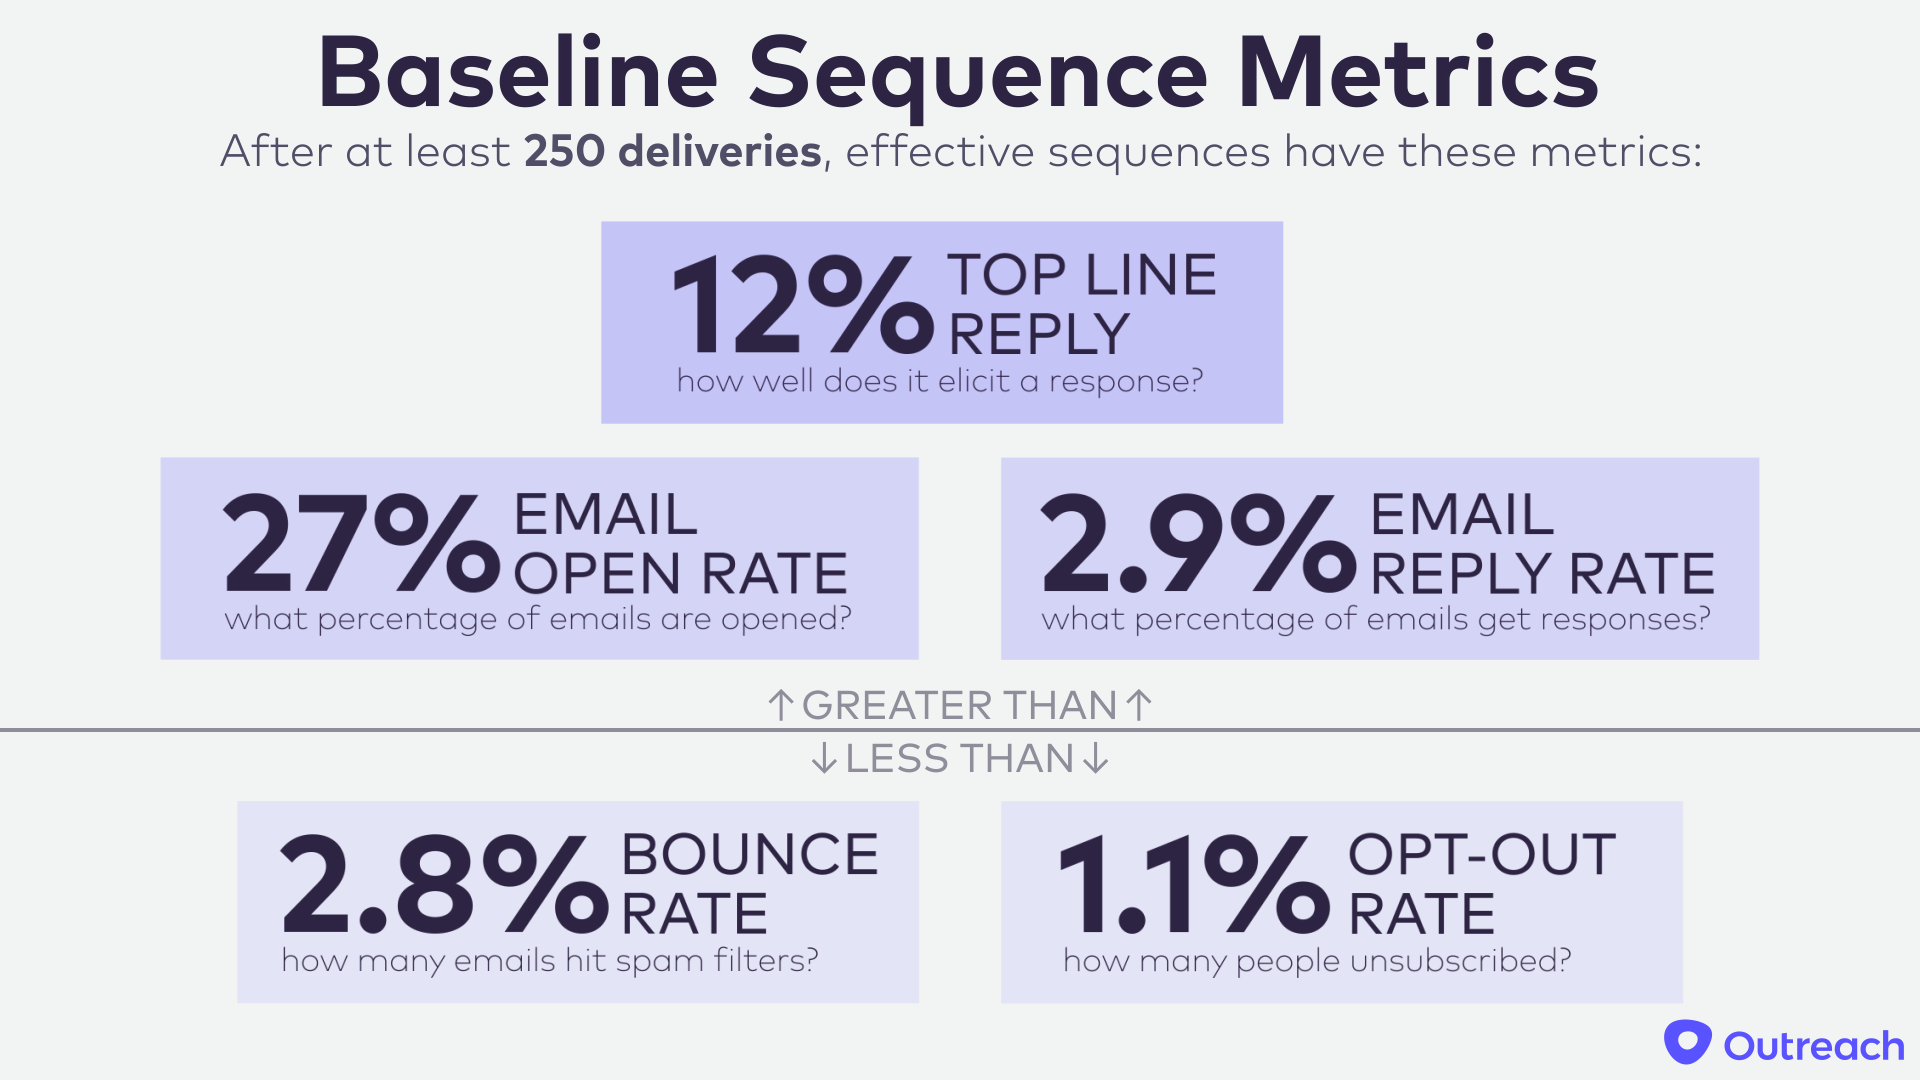 Nick-Baseline-Sequence-Metrics.png#asset:9074